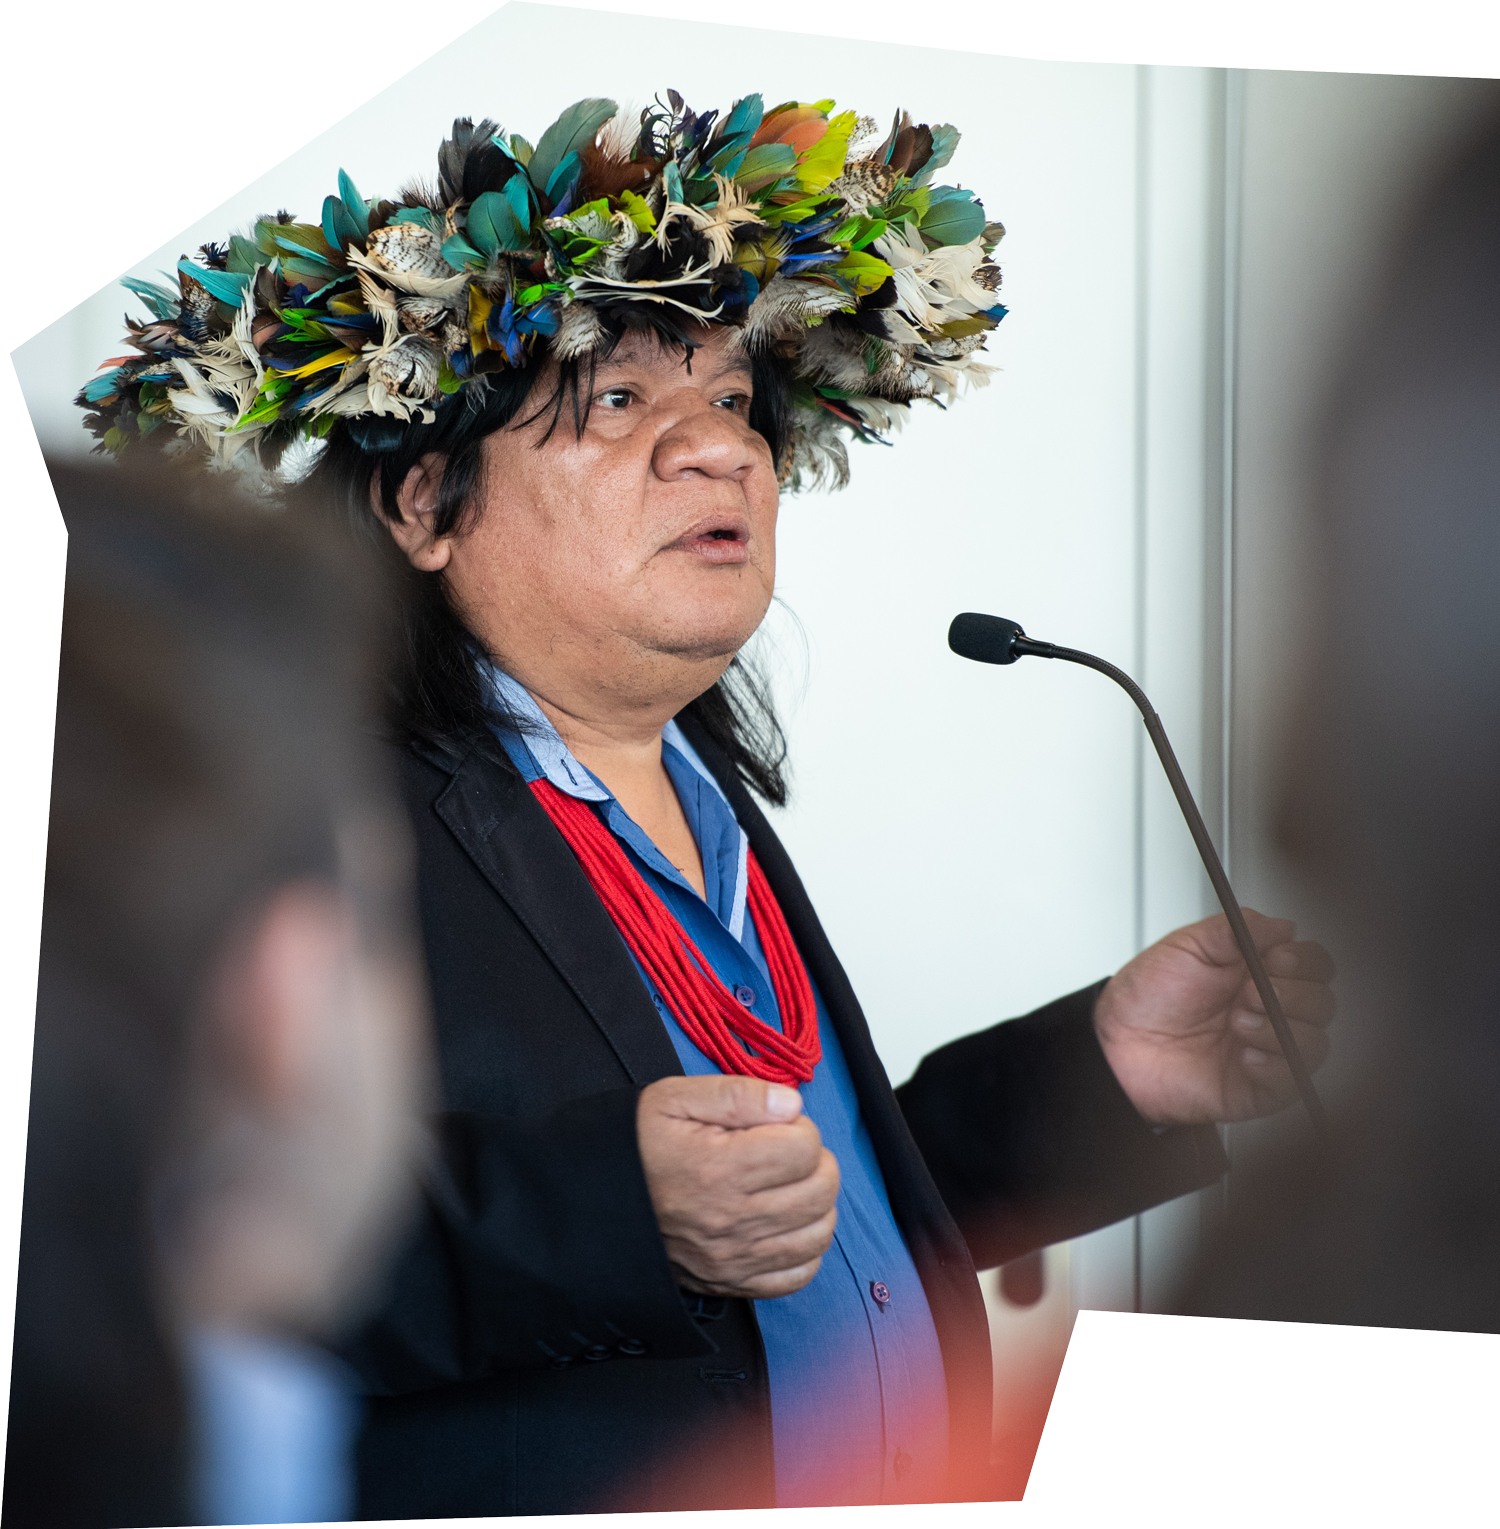 Amazonian tribal chief Almir Narayamoga Suruí speaking during a conference on Indigenous communities and the environment in 2019.